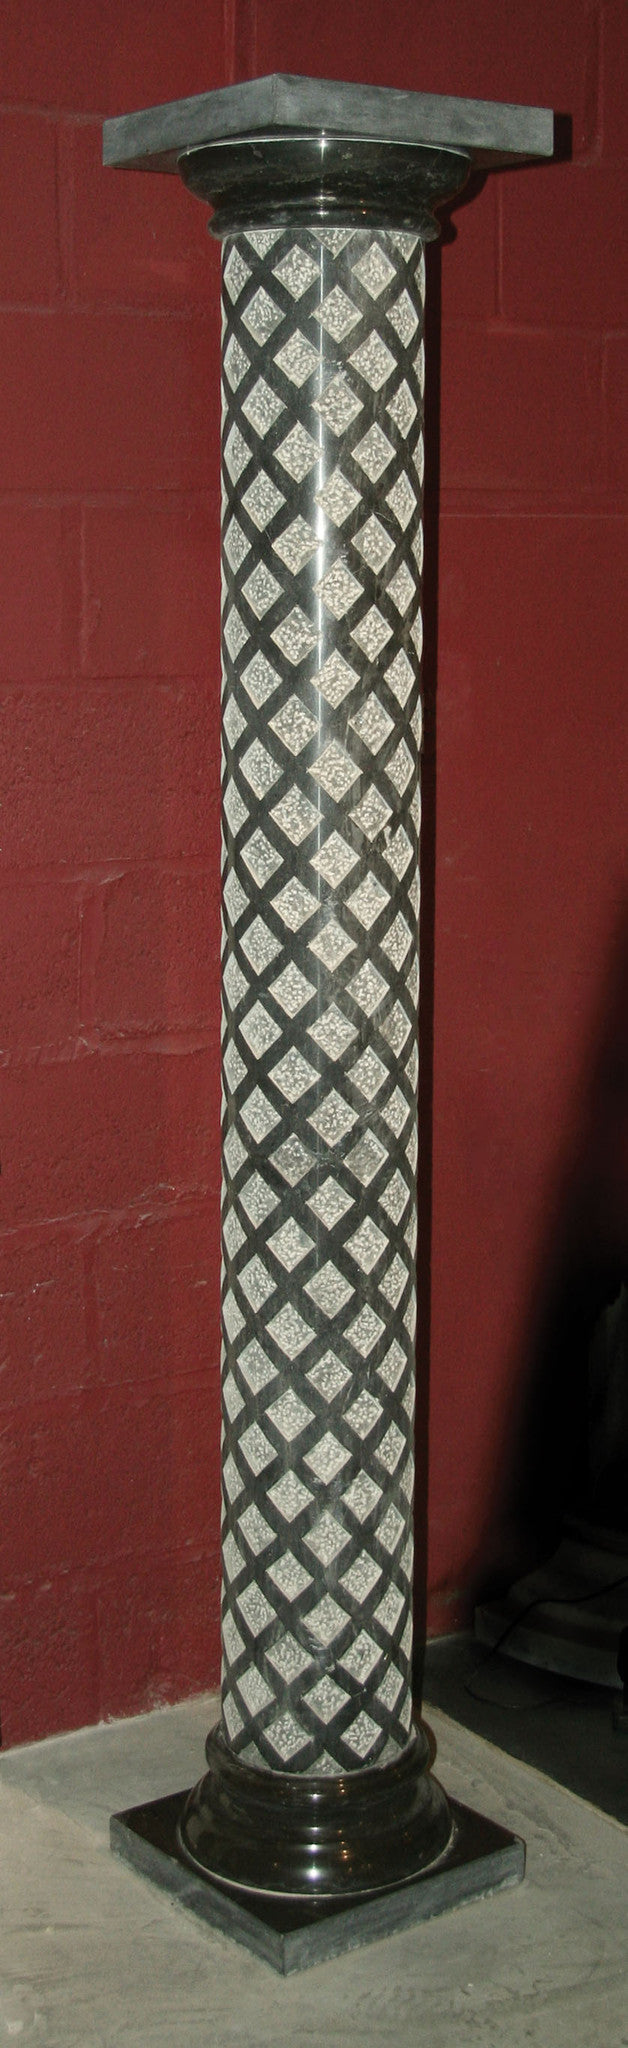 The Harlequin Column. (Charcoal Marble)